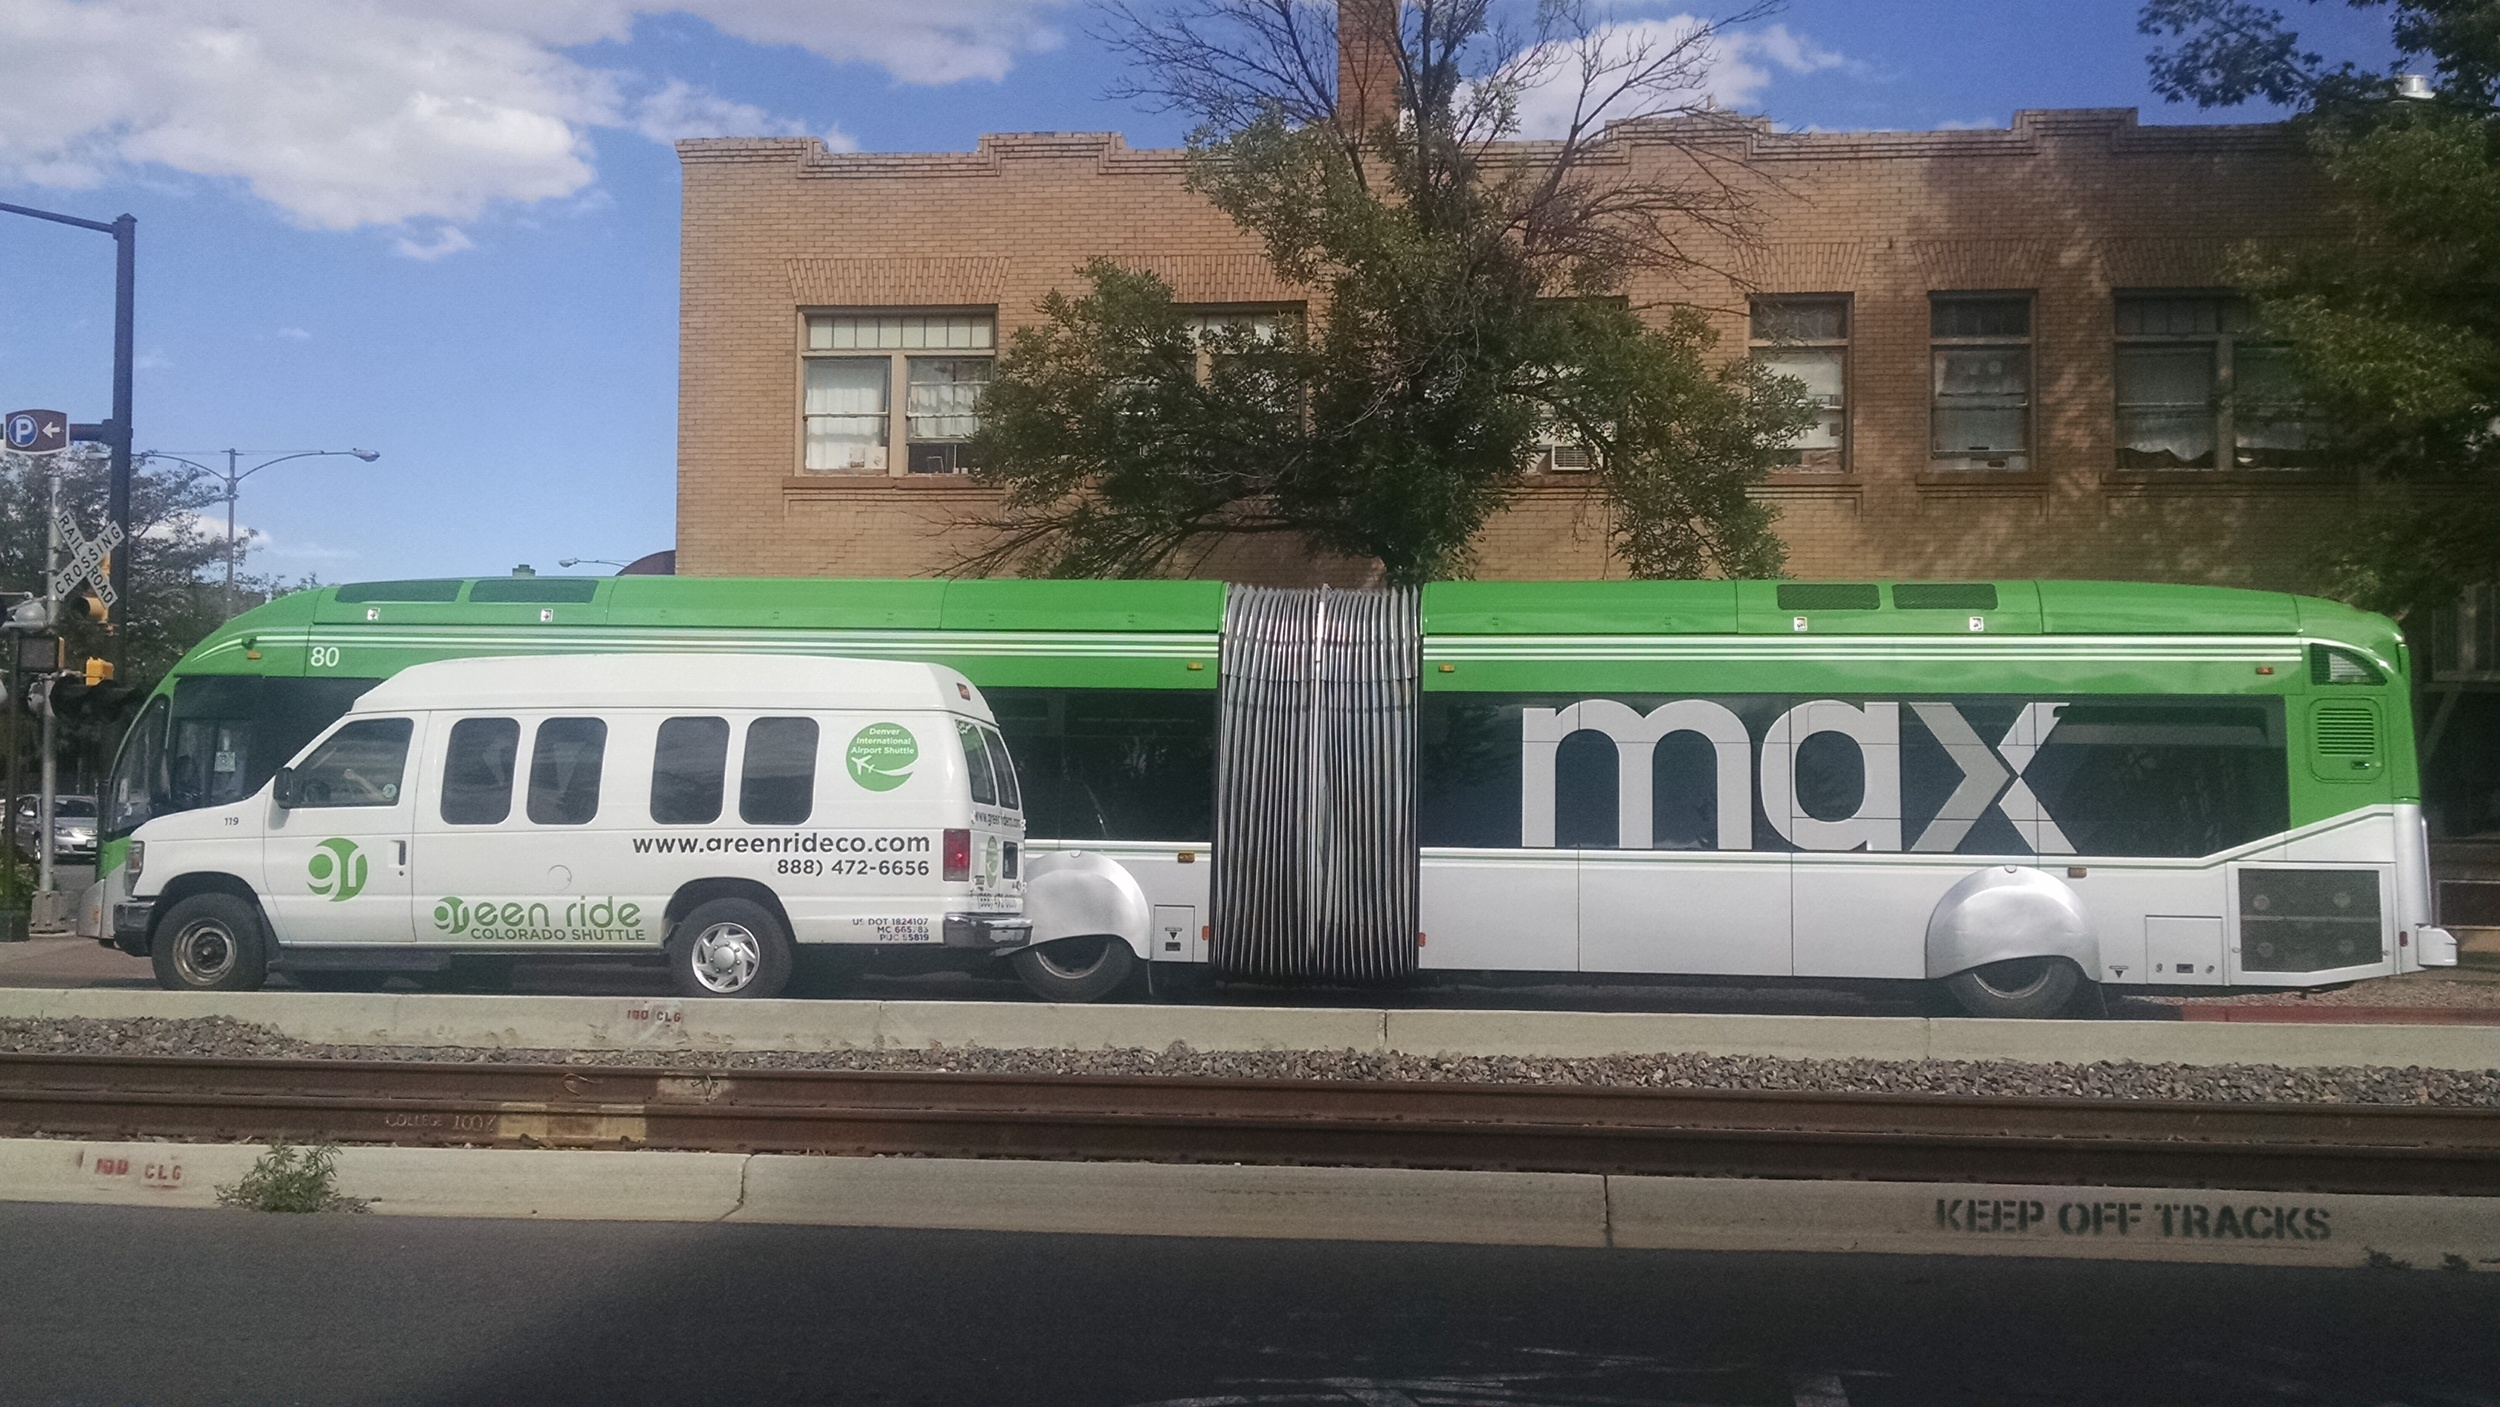 MAX bus with shuttle to the Denver airport in the foreground. Local and regional transportation.